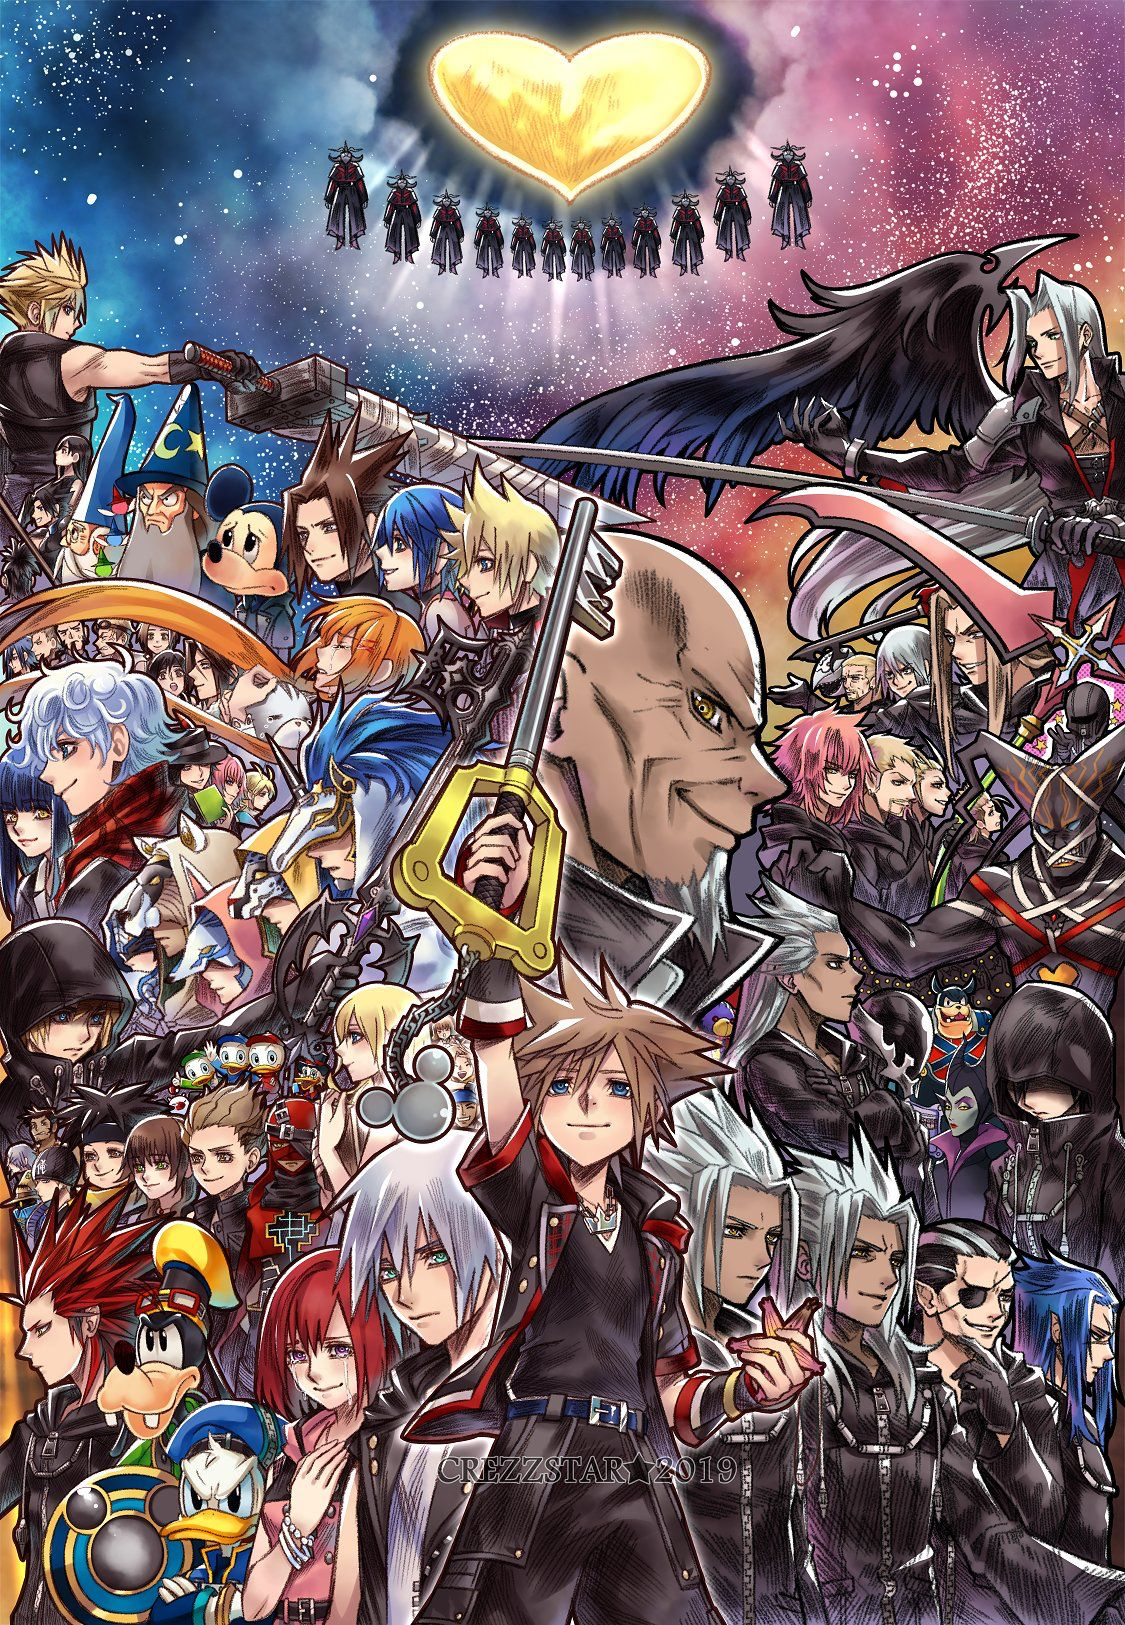 Kingdom Hearts | Kingdom hearts wallpaper, Kingdom hearts fanart, Kingdom  hearts funny